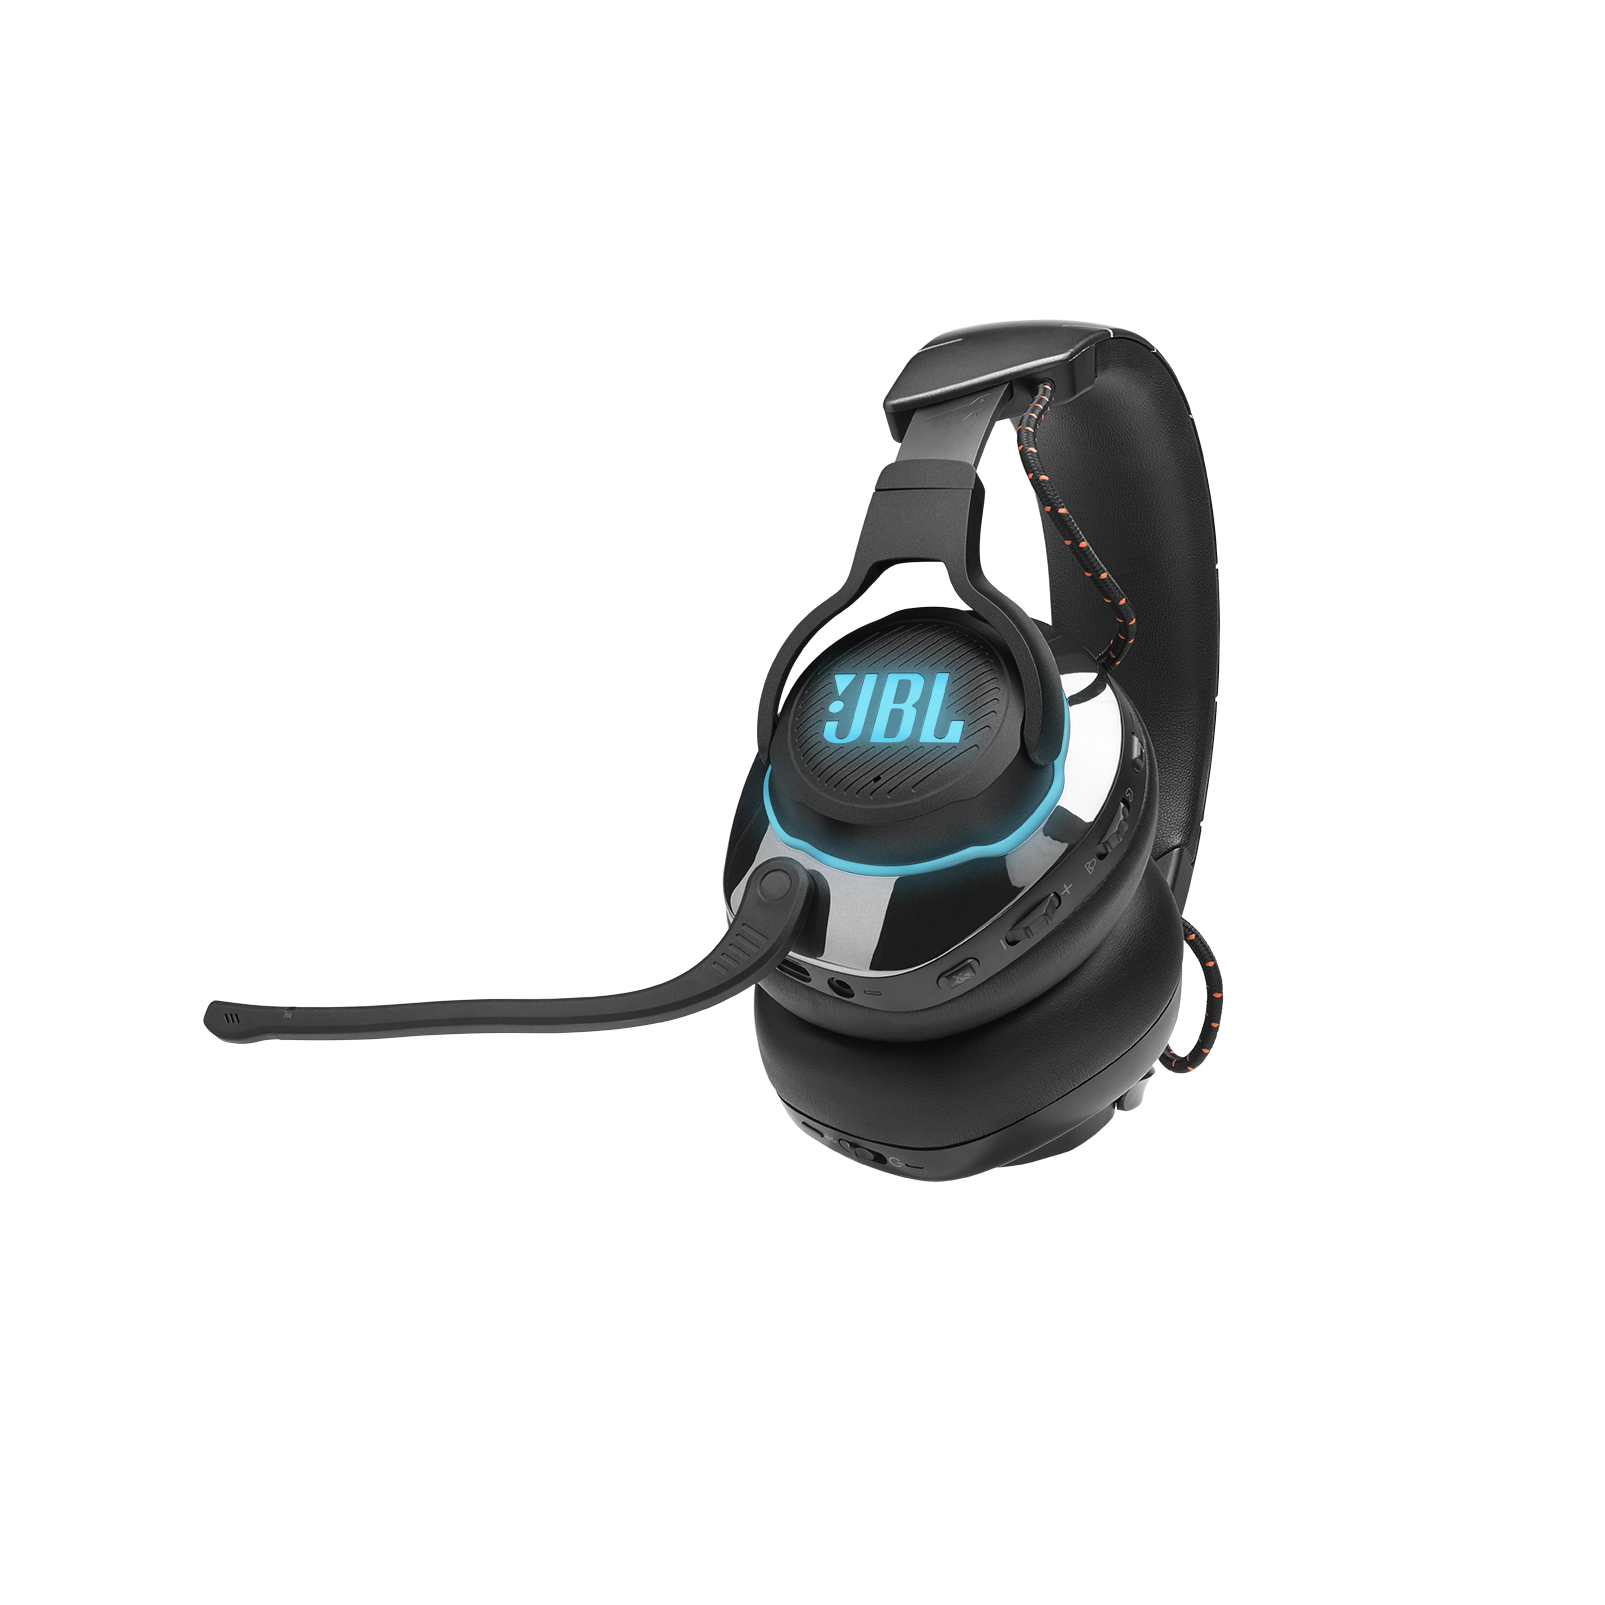 JBL Quantum 800 - Black - Wireless over-ear performance gaming headset with Active Noise Cancelling and Bluetooth 5.0 - Detailshot 1